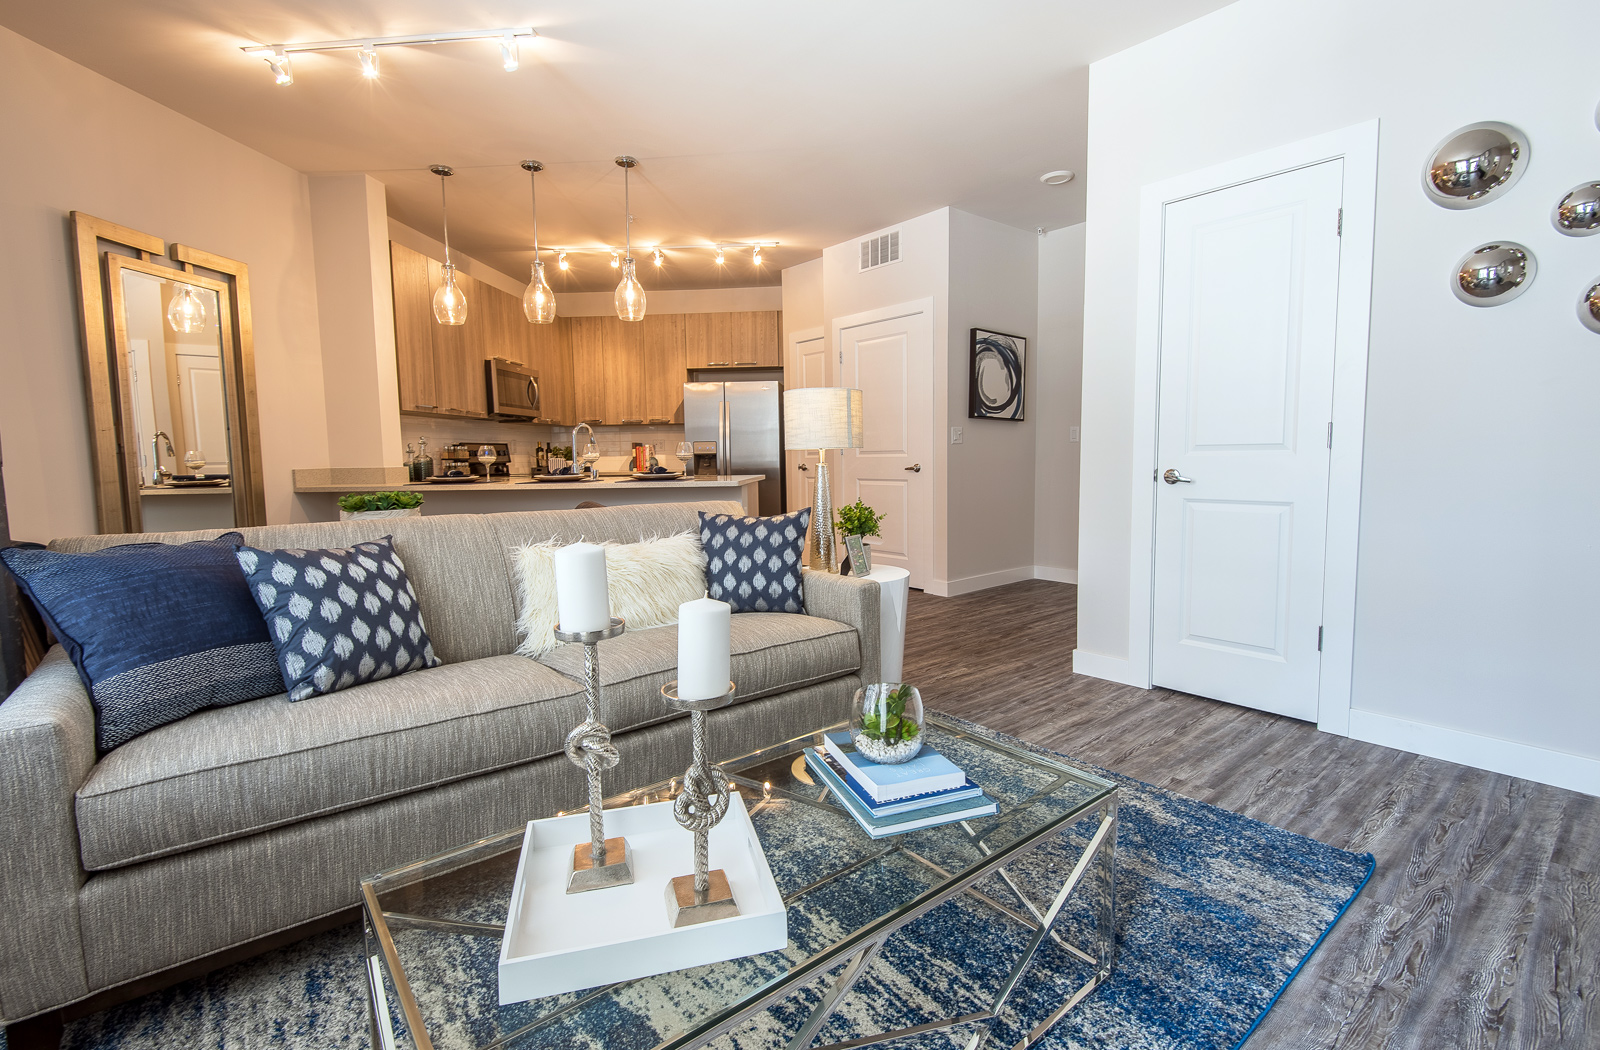 Photos of Luxury Apartments in Wauwatosa WI